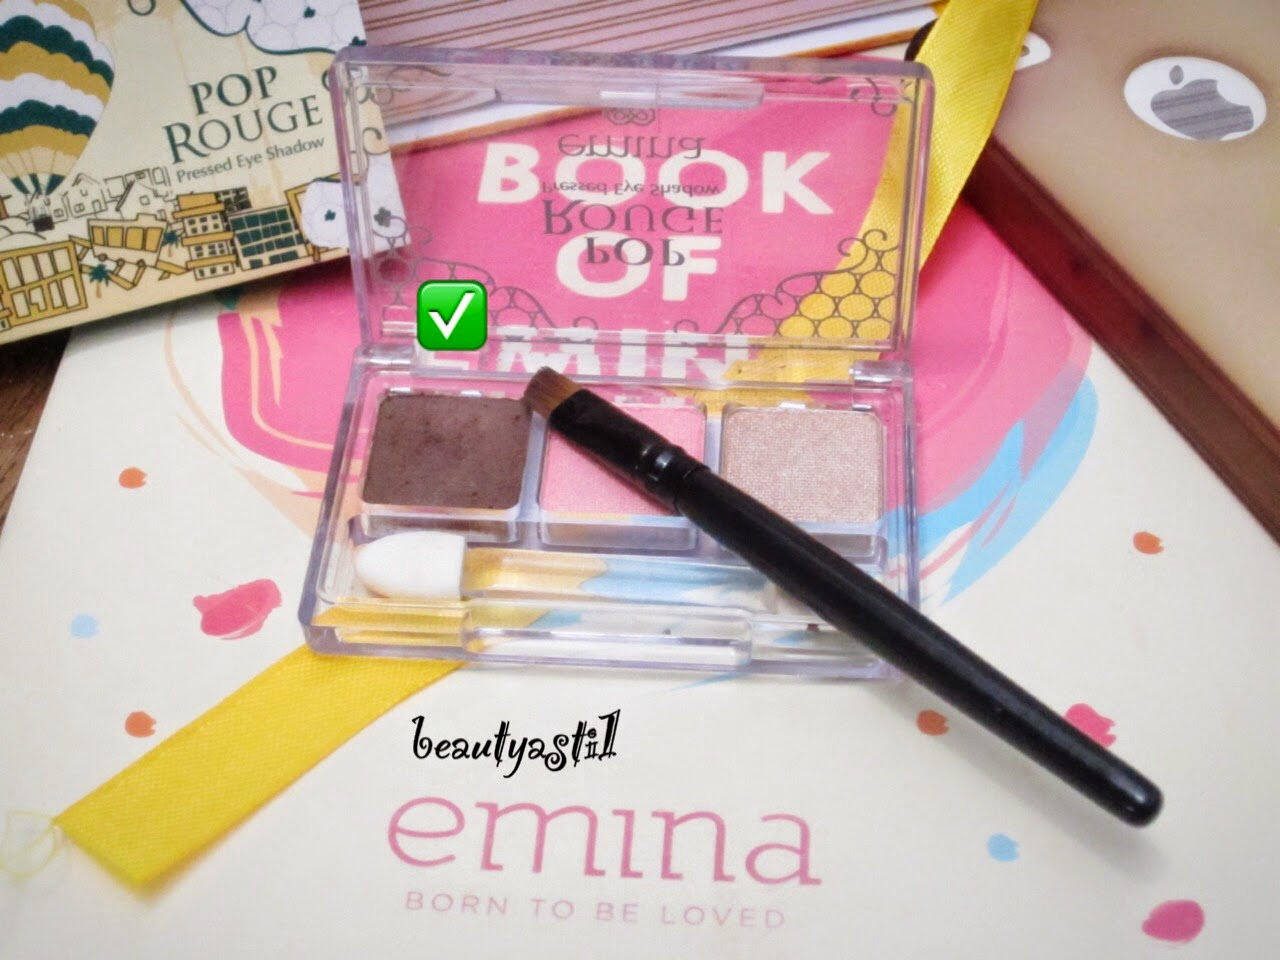 emina-pop-rouge-eyeshadow-gelato-review.jpg